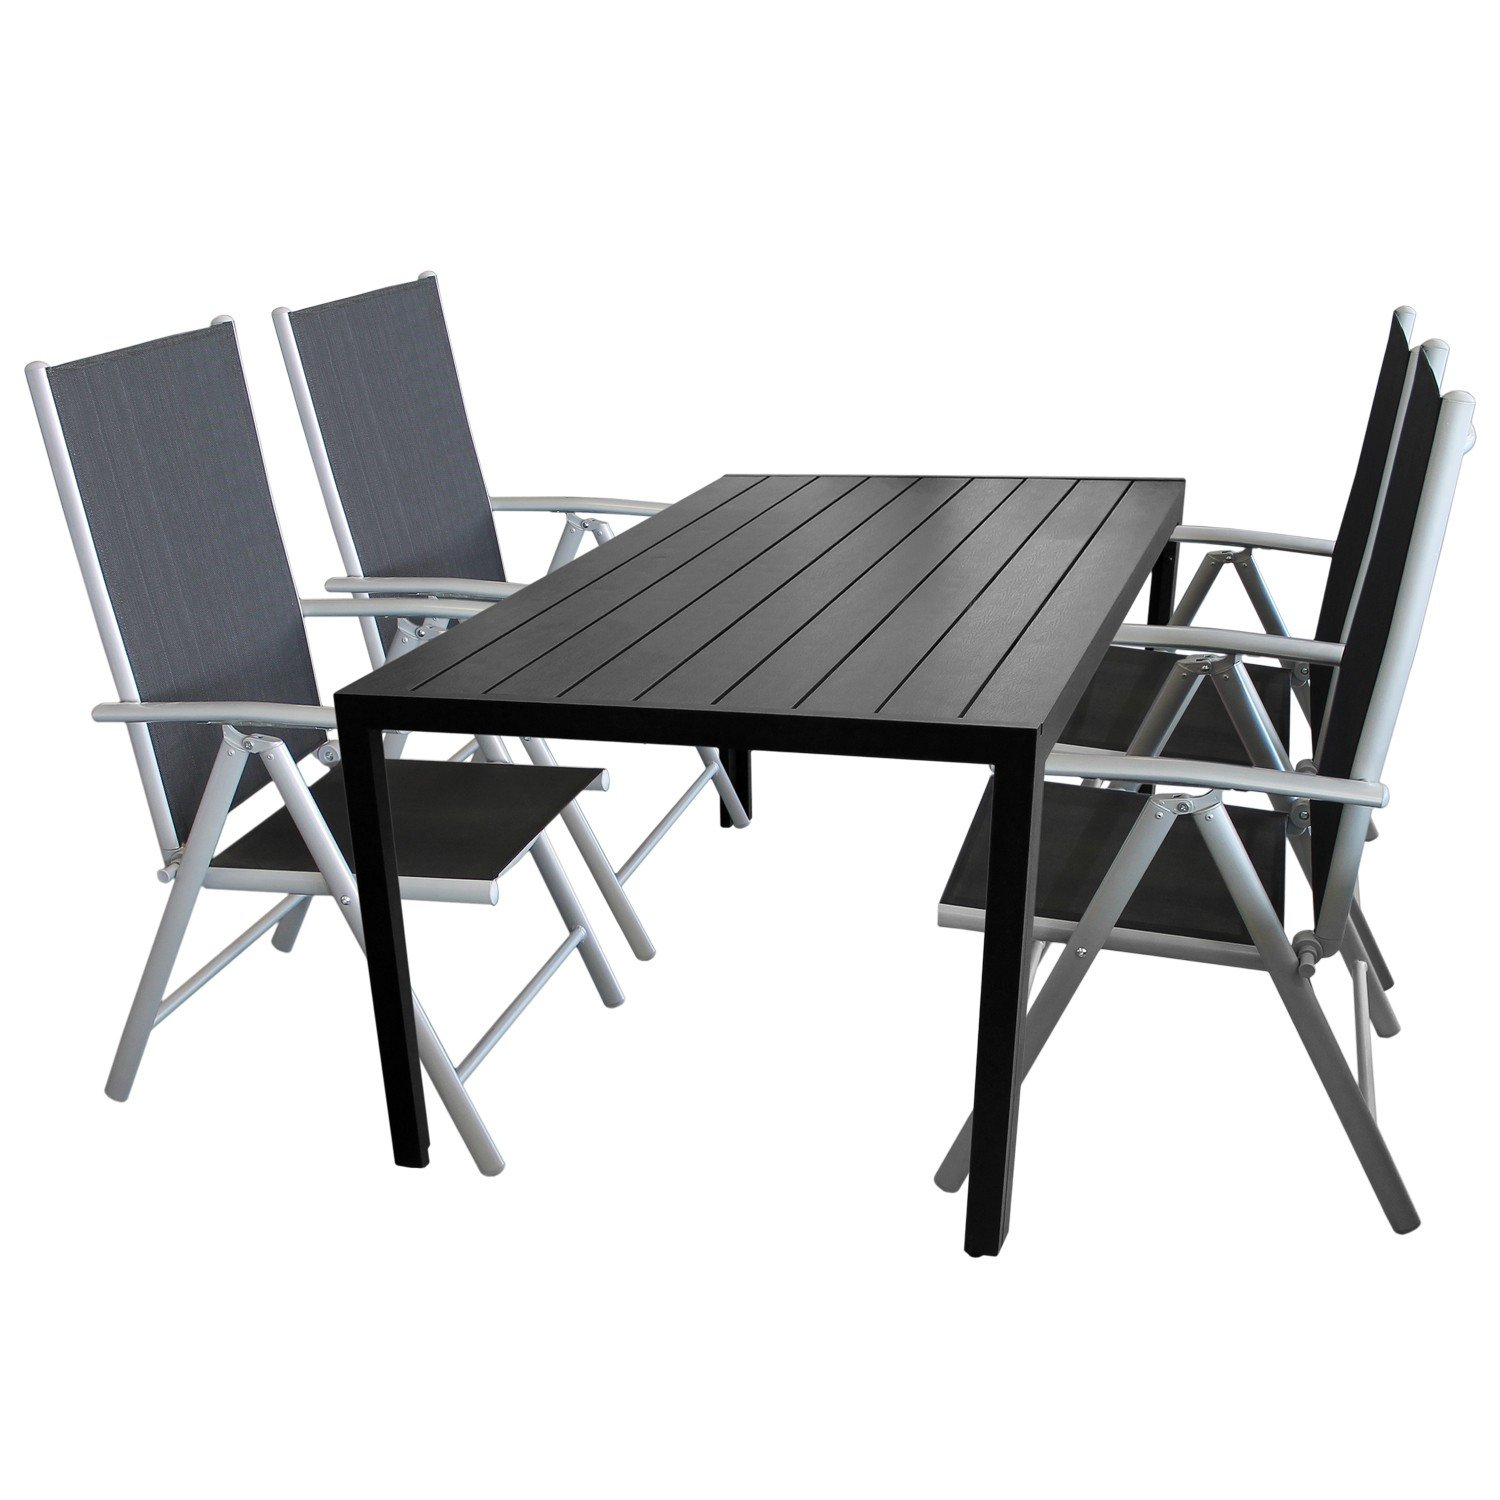 5tlg terrassenm bel set sitzgruppe 4x hochlehner klappstuhl pulverbeschichtet. Black Bedroom Furniture Sets. Home Design Ideas